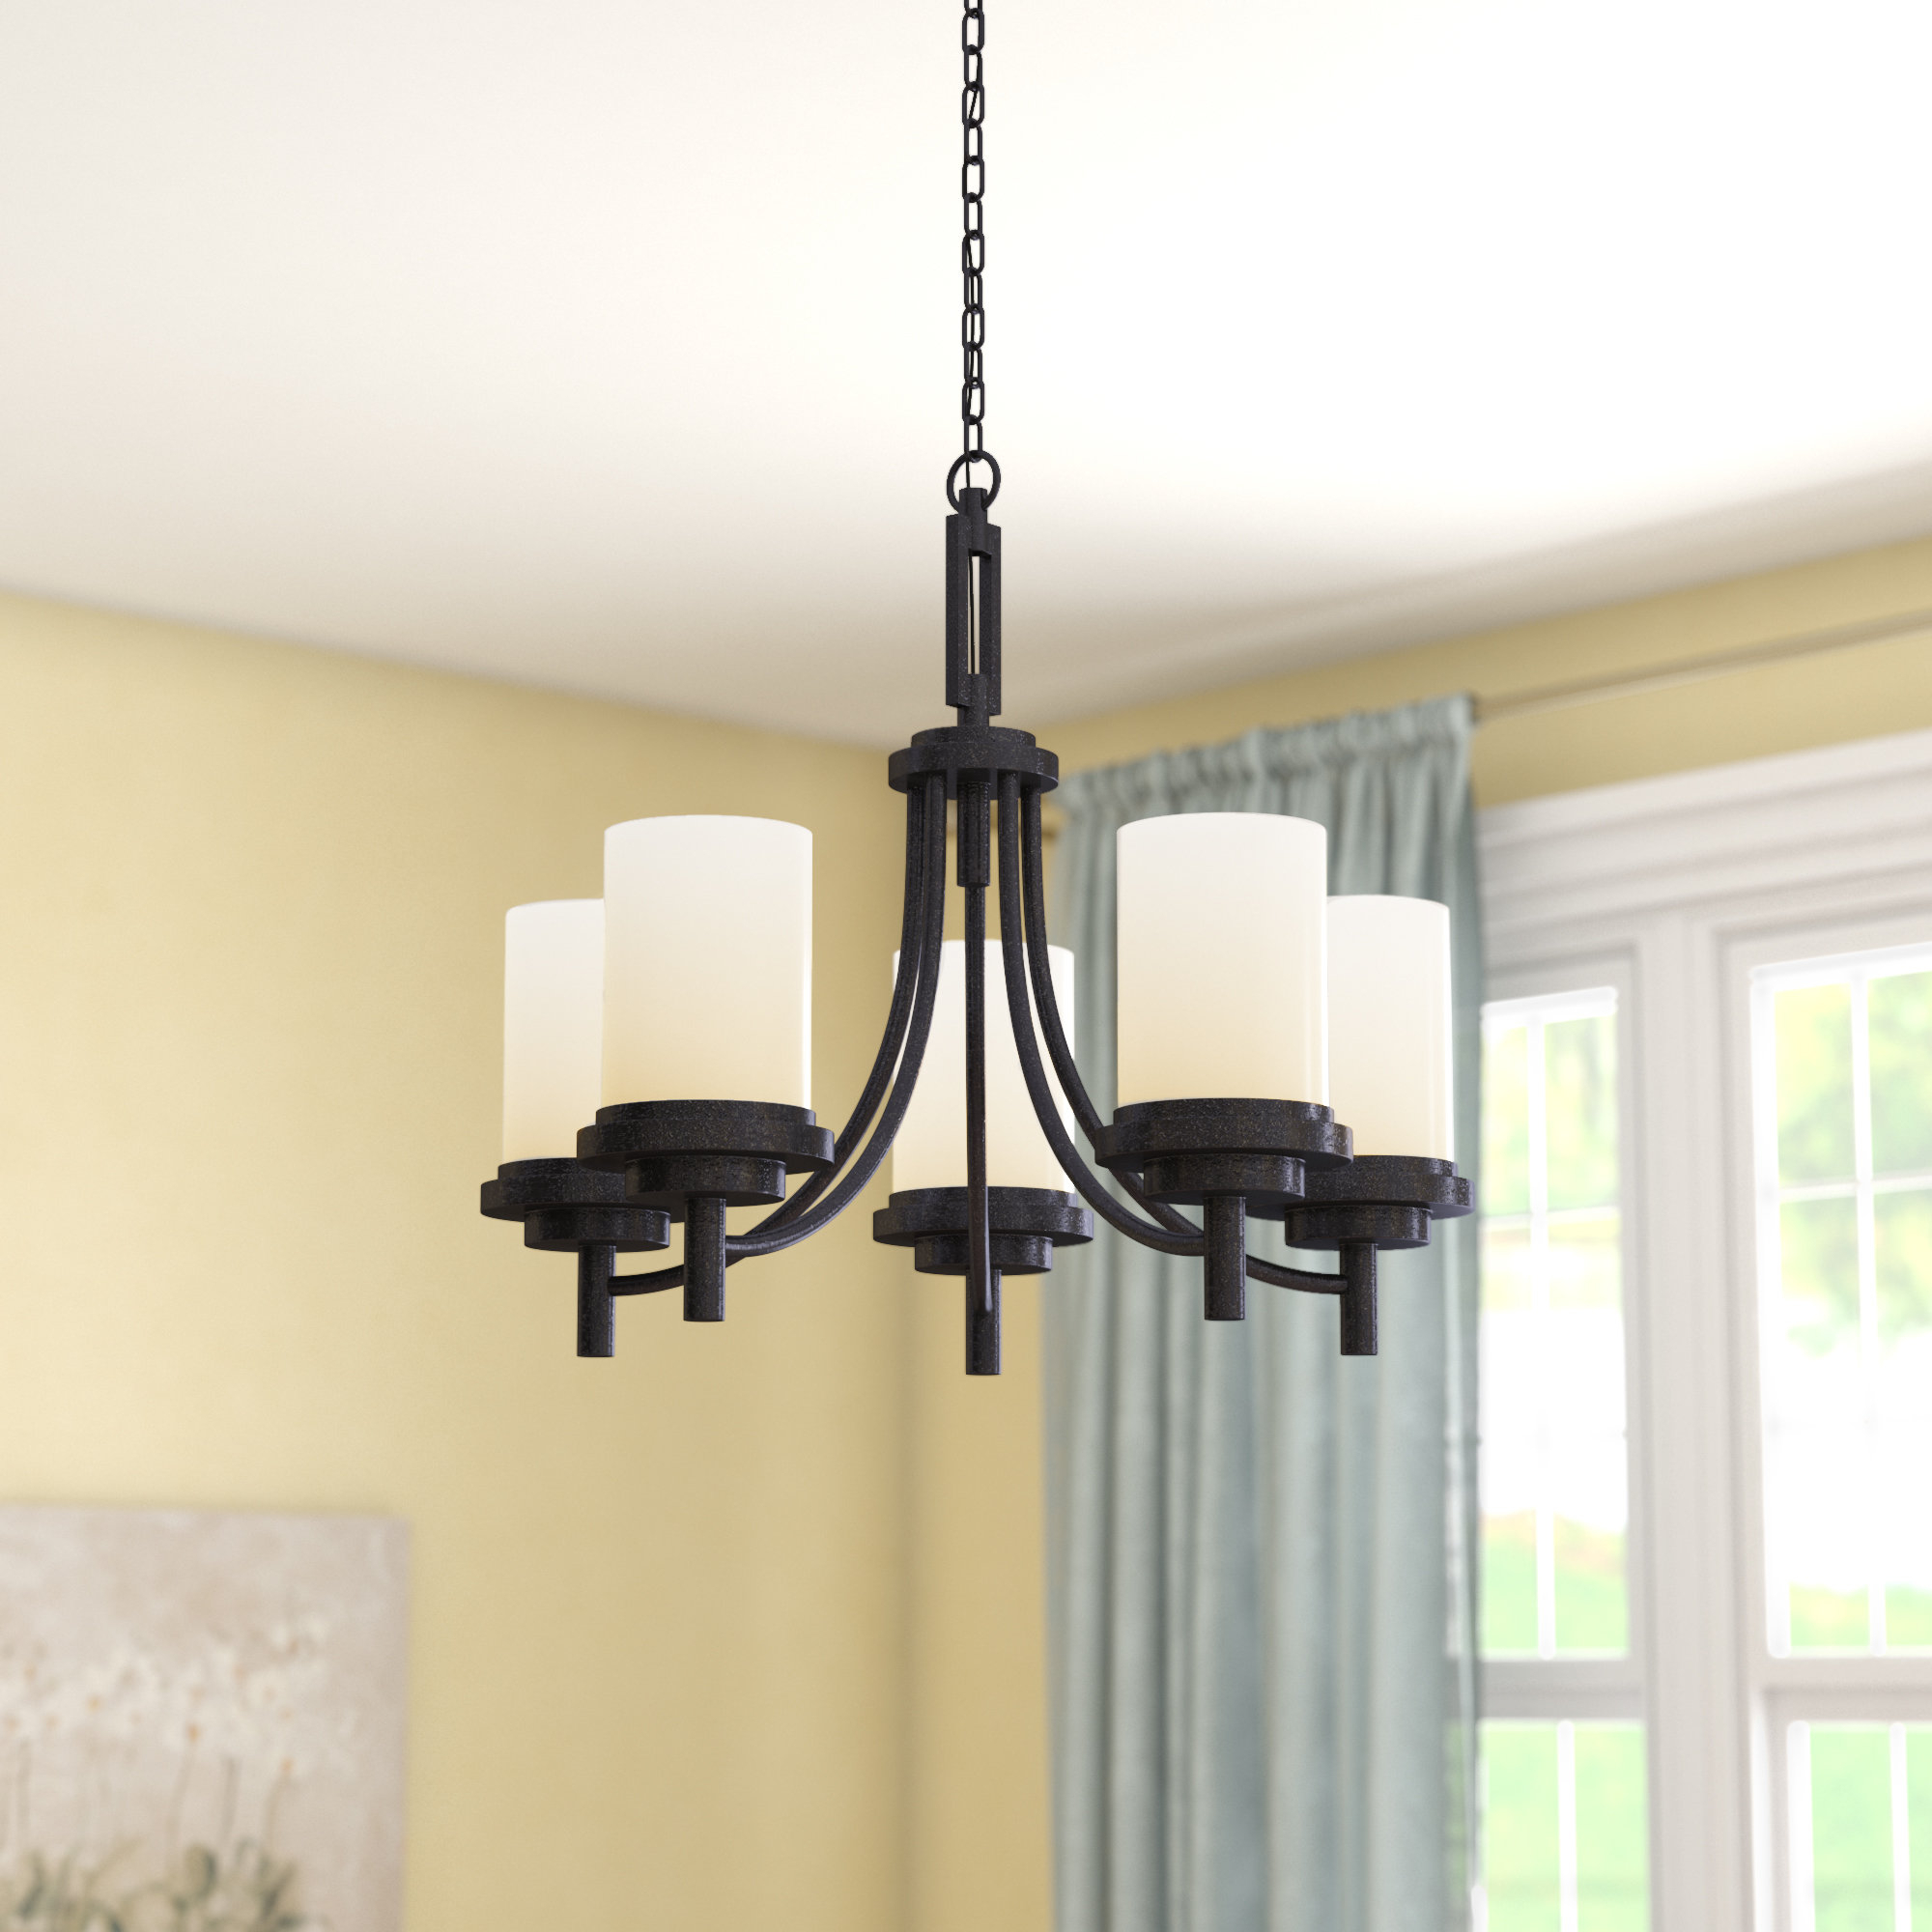 Tilford 5 Light Shaded Chandelier Pertaining To Crofoot 5 Light Shaded Chandeliers (View 28 of 30)